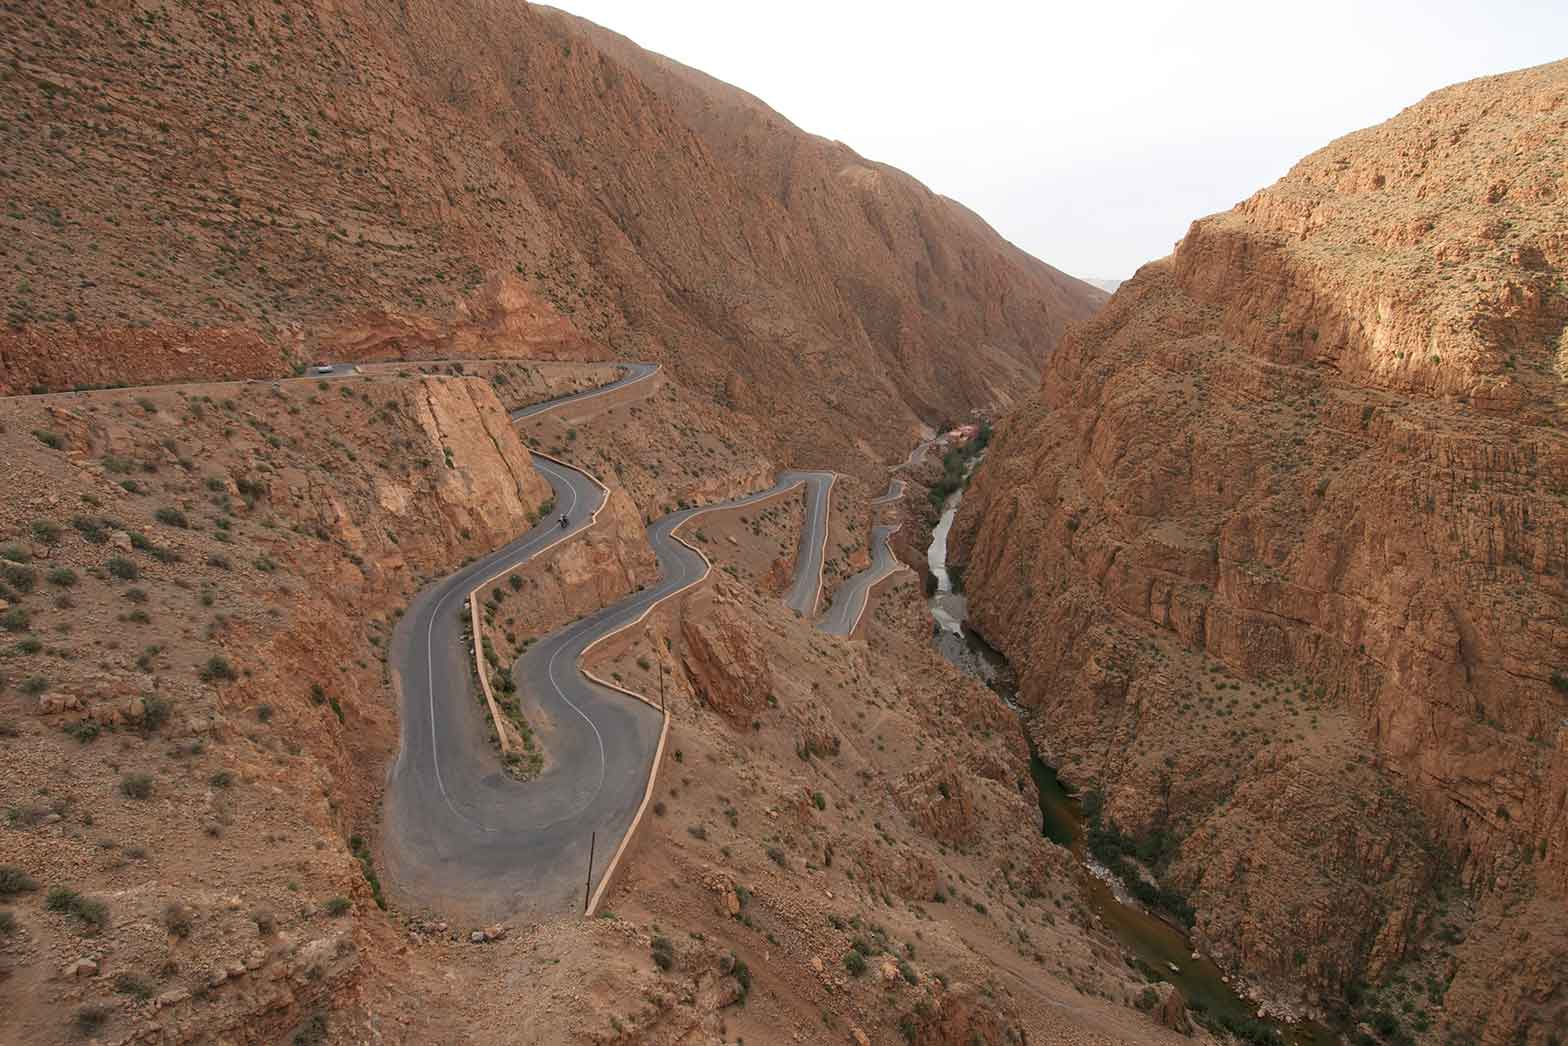 Road curves of the High Atlas Mountain